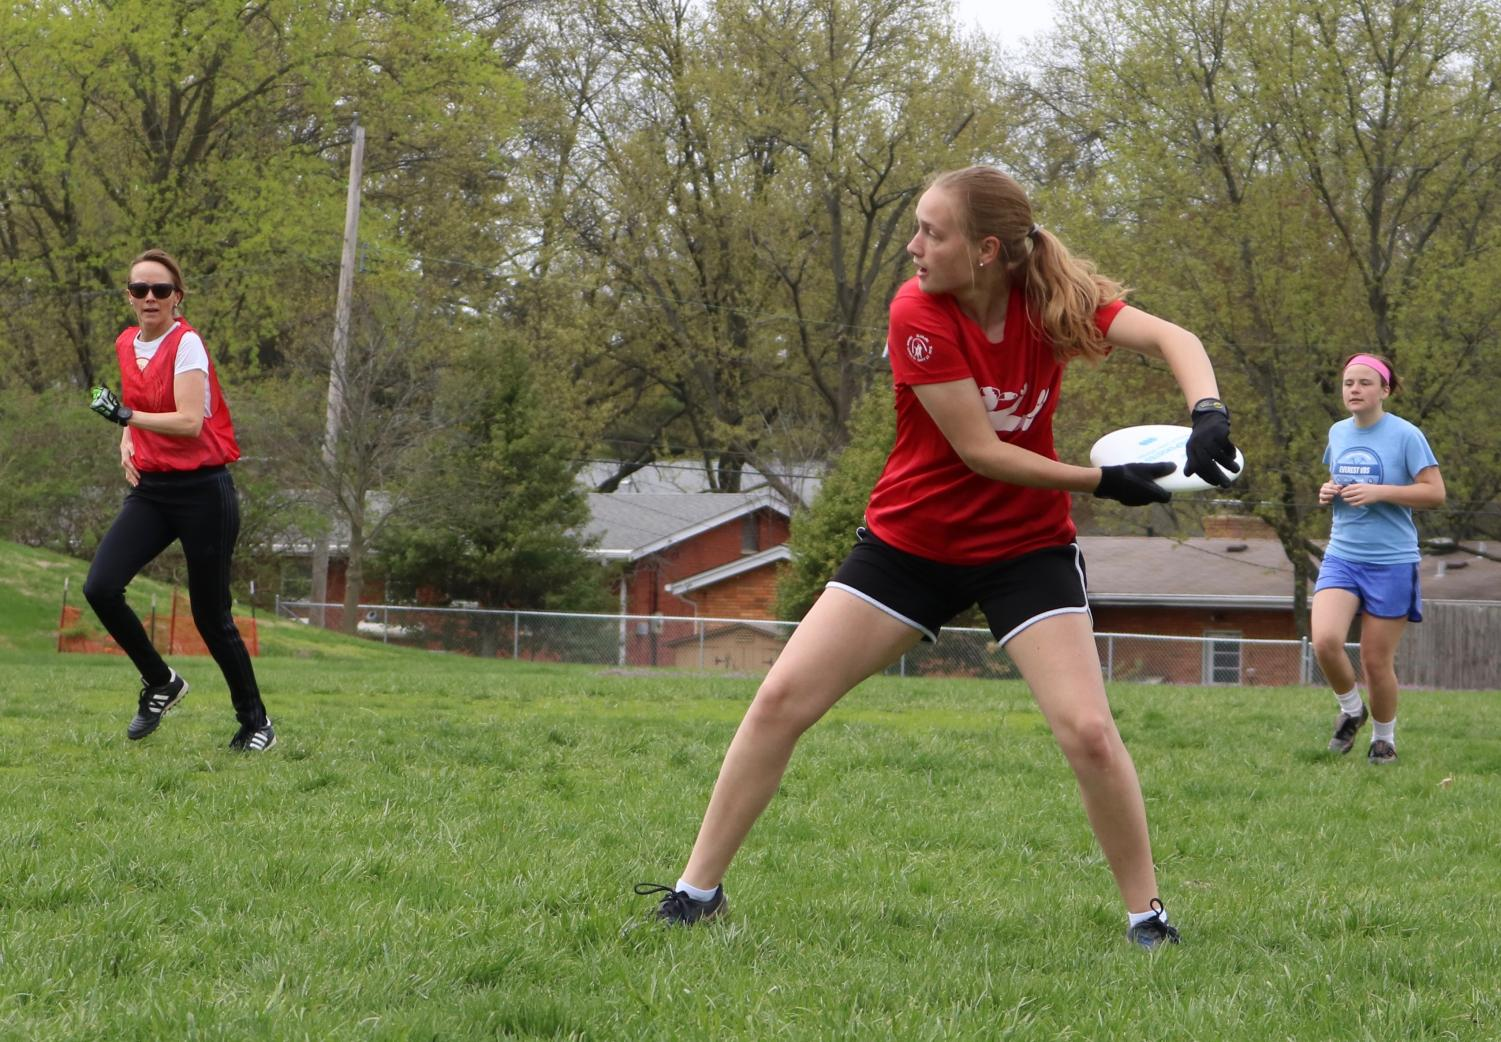 Katie+Hastings%2C+junior%2C+throws+a+backhand+down+the+field.